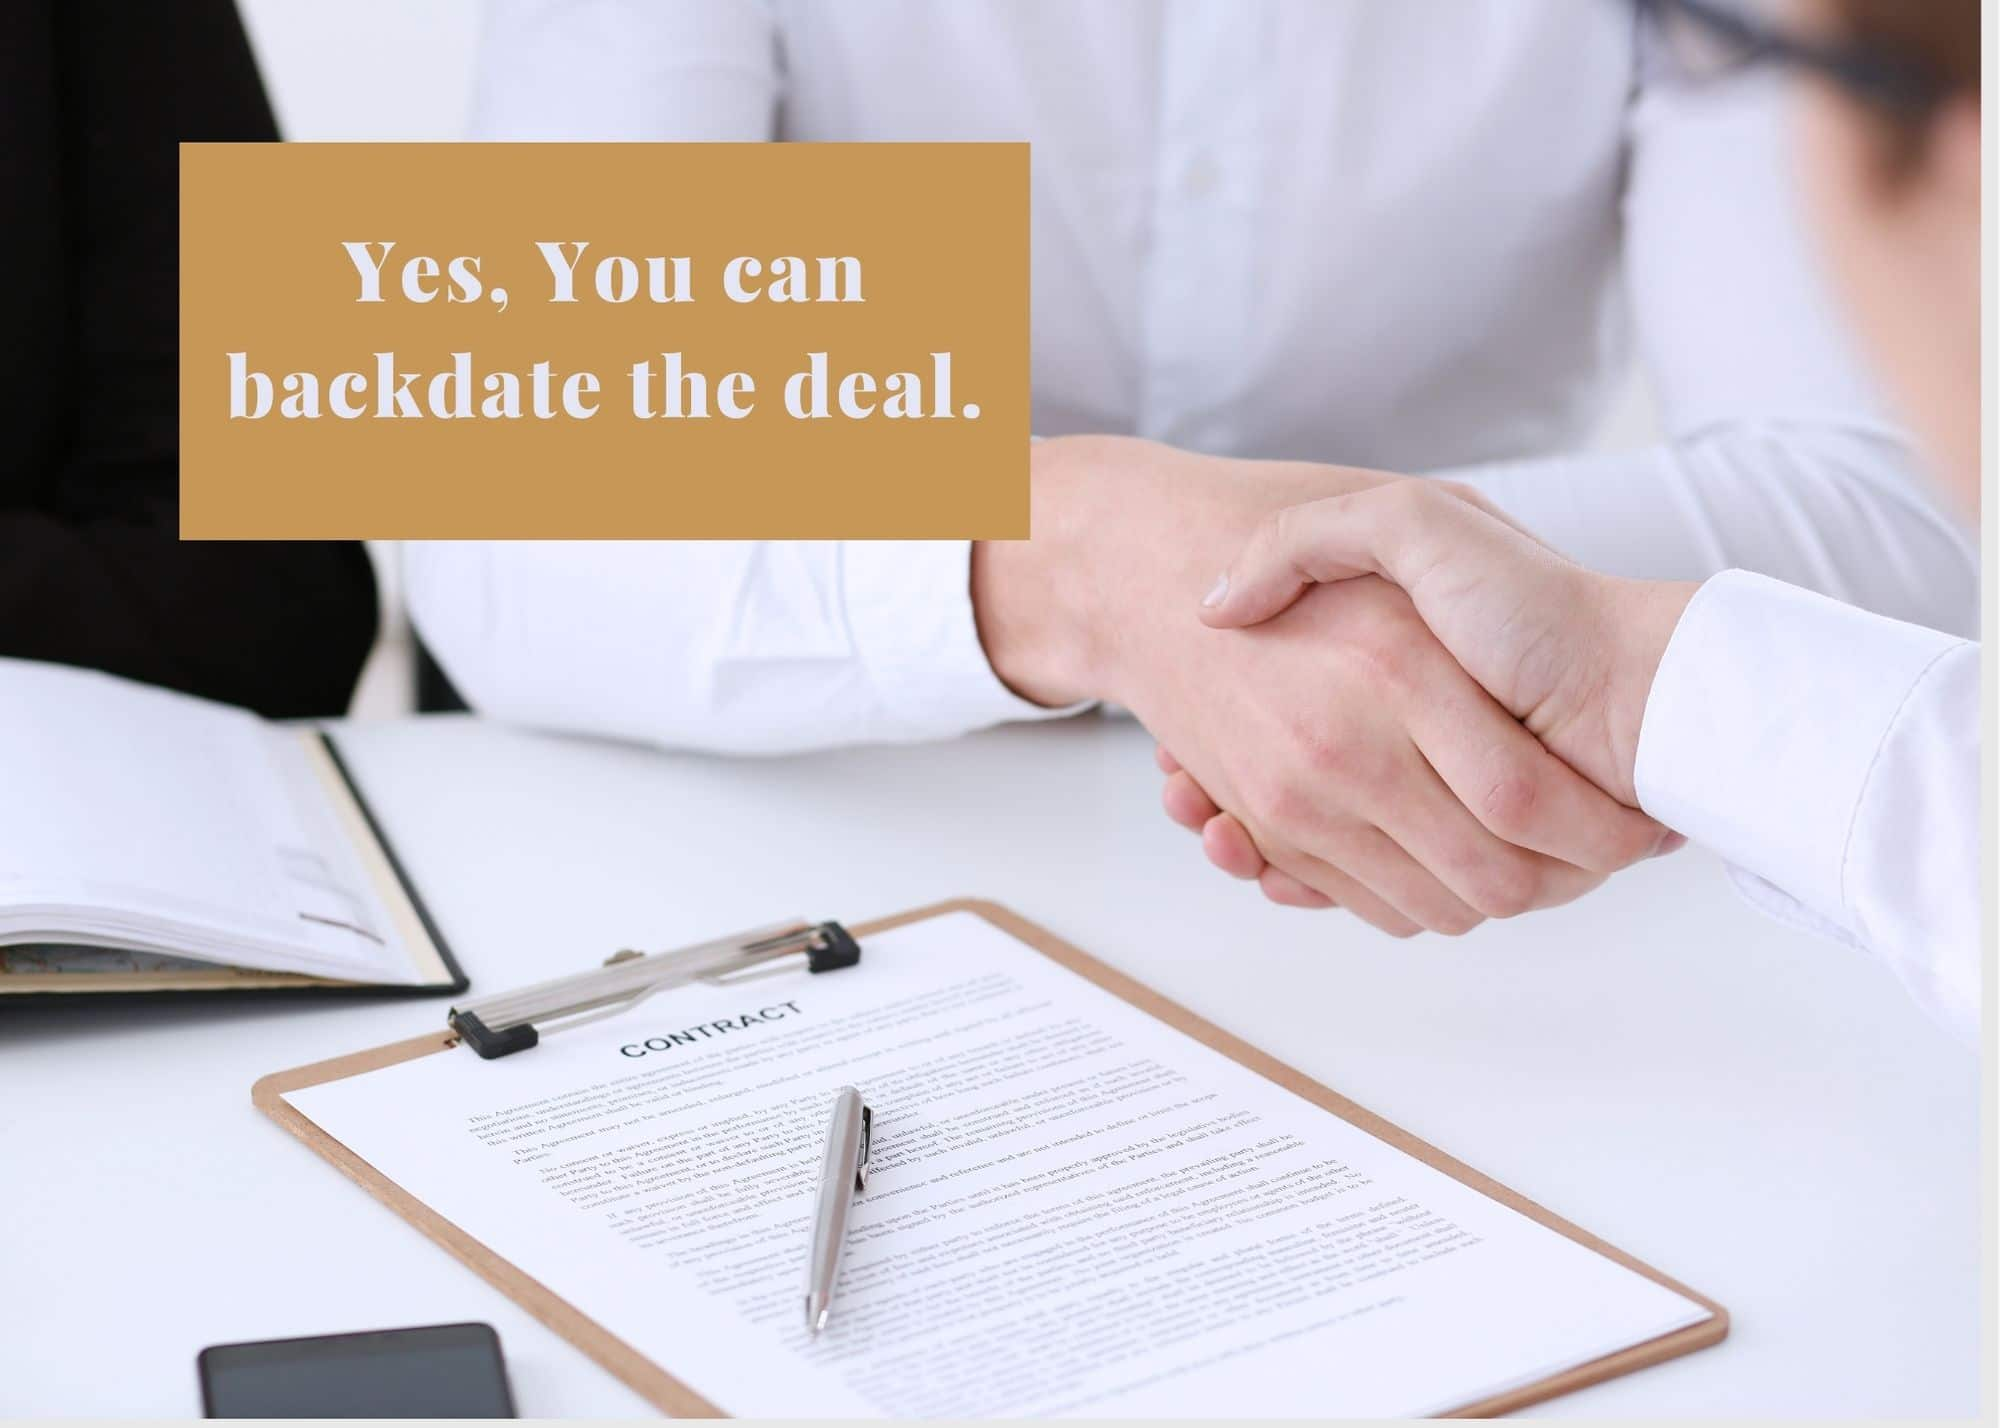 It is legal to backdate a business deal